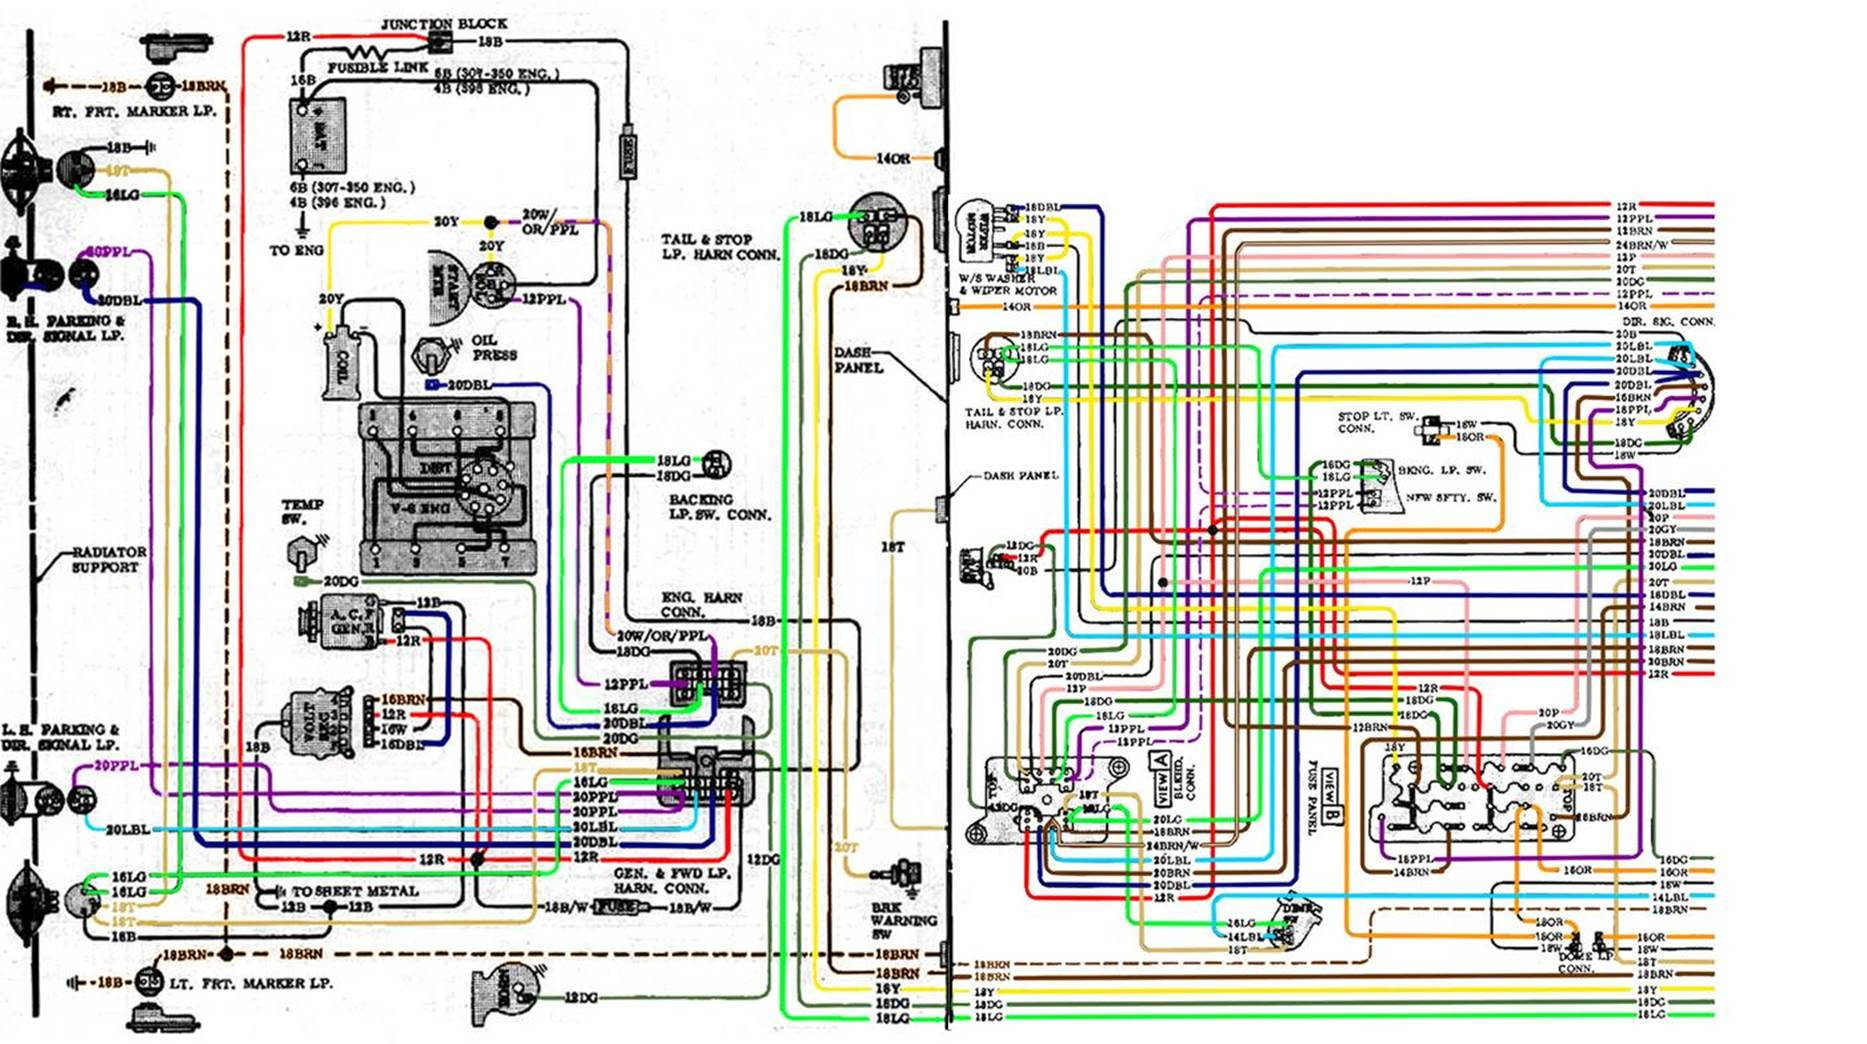 63 Chevy Nova Wiring Diagram - 2.xeghaqqt.chrisblacksbio.info • on 85 chevy wiring diagram, 1985 chevy c10 engine, 1985 chevrolet truck diagram, 1985 chevy fuse box diagram, 1985 chevy truck fuse box, 1985 chevy truck wiring harness, 1985 chevy suburban belt diagram, 1985 dodge dakota wiring diagram, 1985 chevy c10 transmission, 1999 mazda 626 wiring diagram, 1985 chevy c10 wheels, 1998 chevy venture wiring diagram, 1985 chevy c10 regulator, 1985 chevy c10 seats, 1985 chevy c10 electrical, 1985 chevy c10 carburetor, 63 chevy wiring diagram, 1985 chevy c10 frame, 1985 chevrolet wiring diagram, 1985 chevy c10 fan belt,